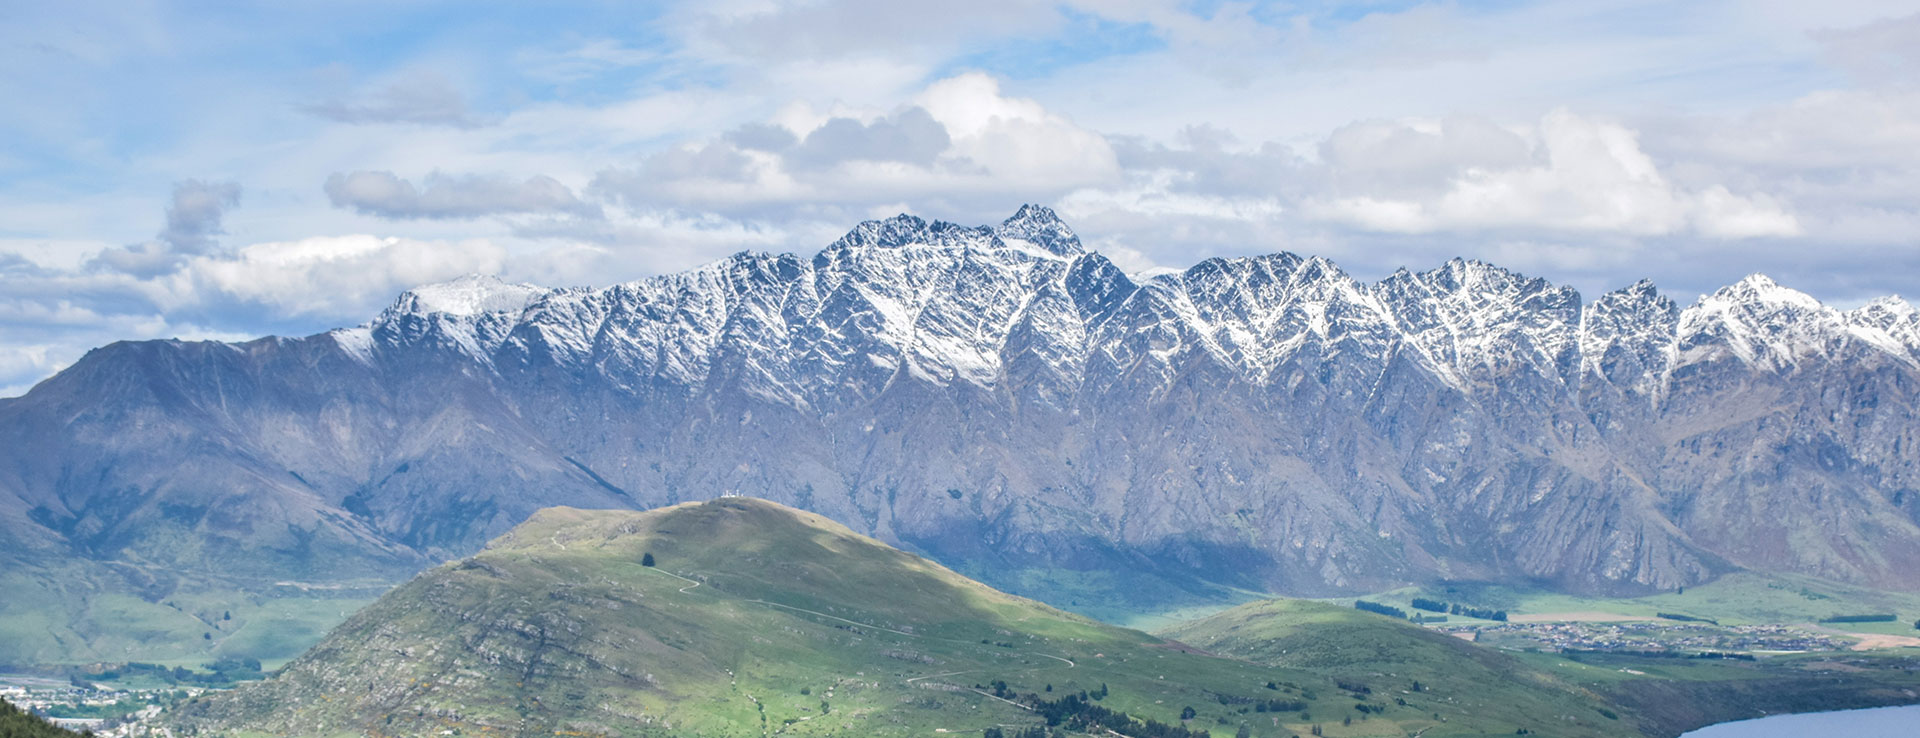 20 things you must see/do when in New Zealand